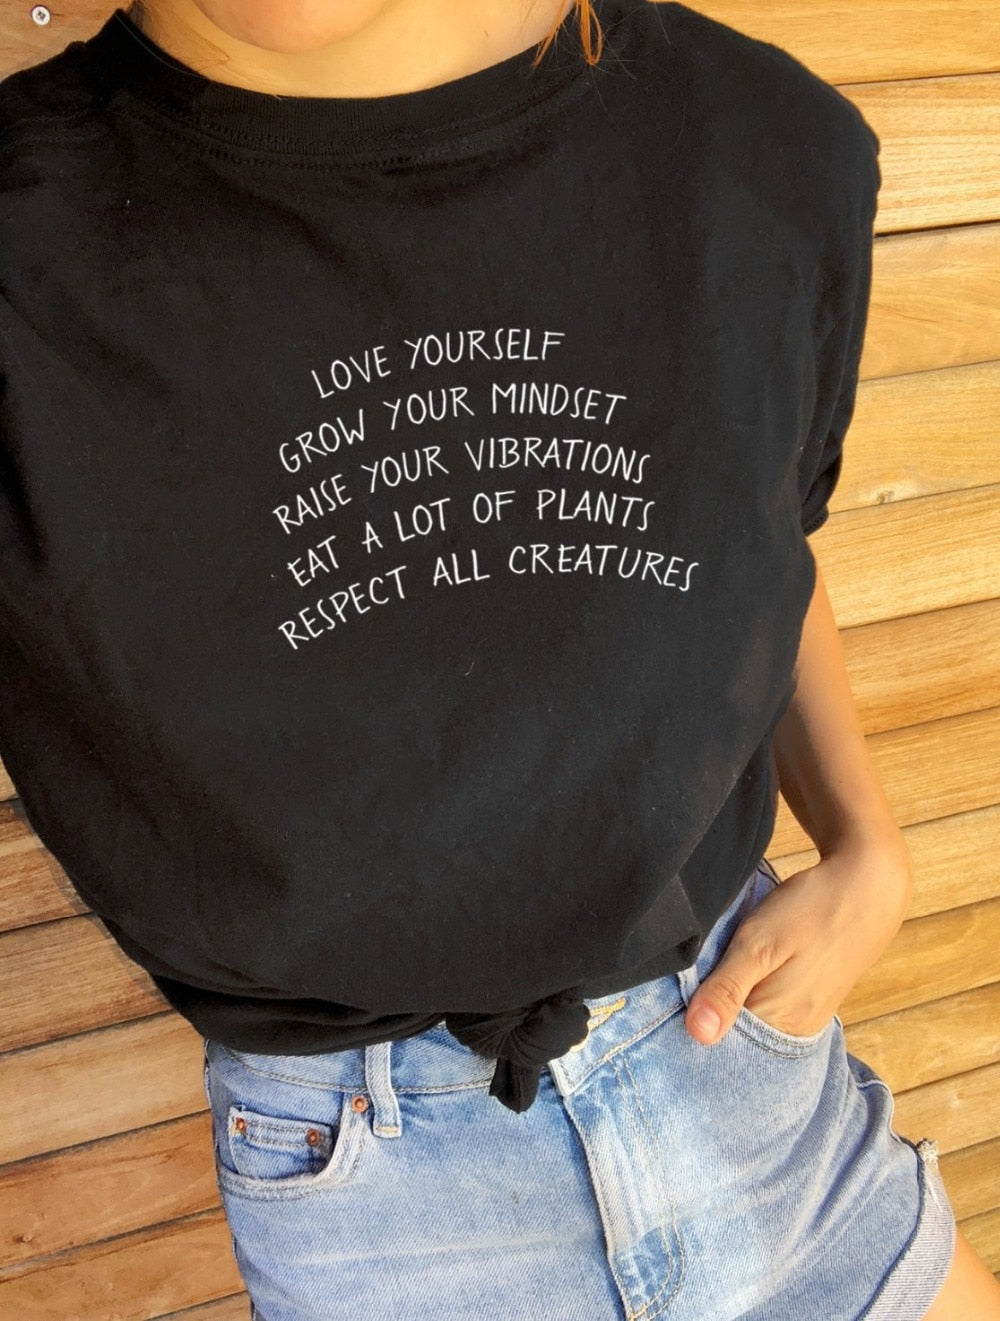 LOVE YOURSELF GROW YOUR MINDSET TEE...-Sunshine's Boutique & Gifts